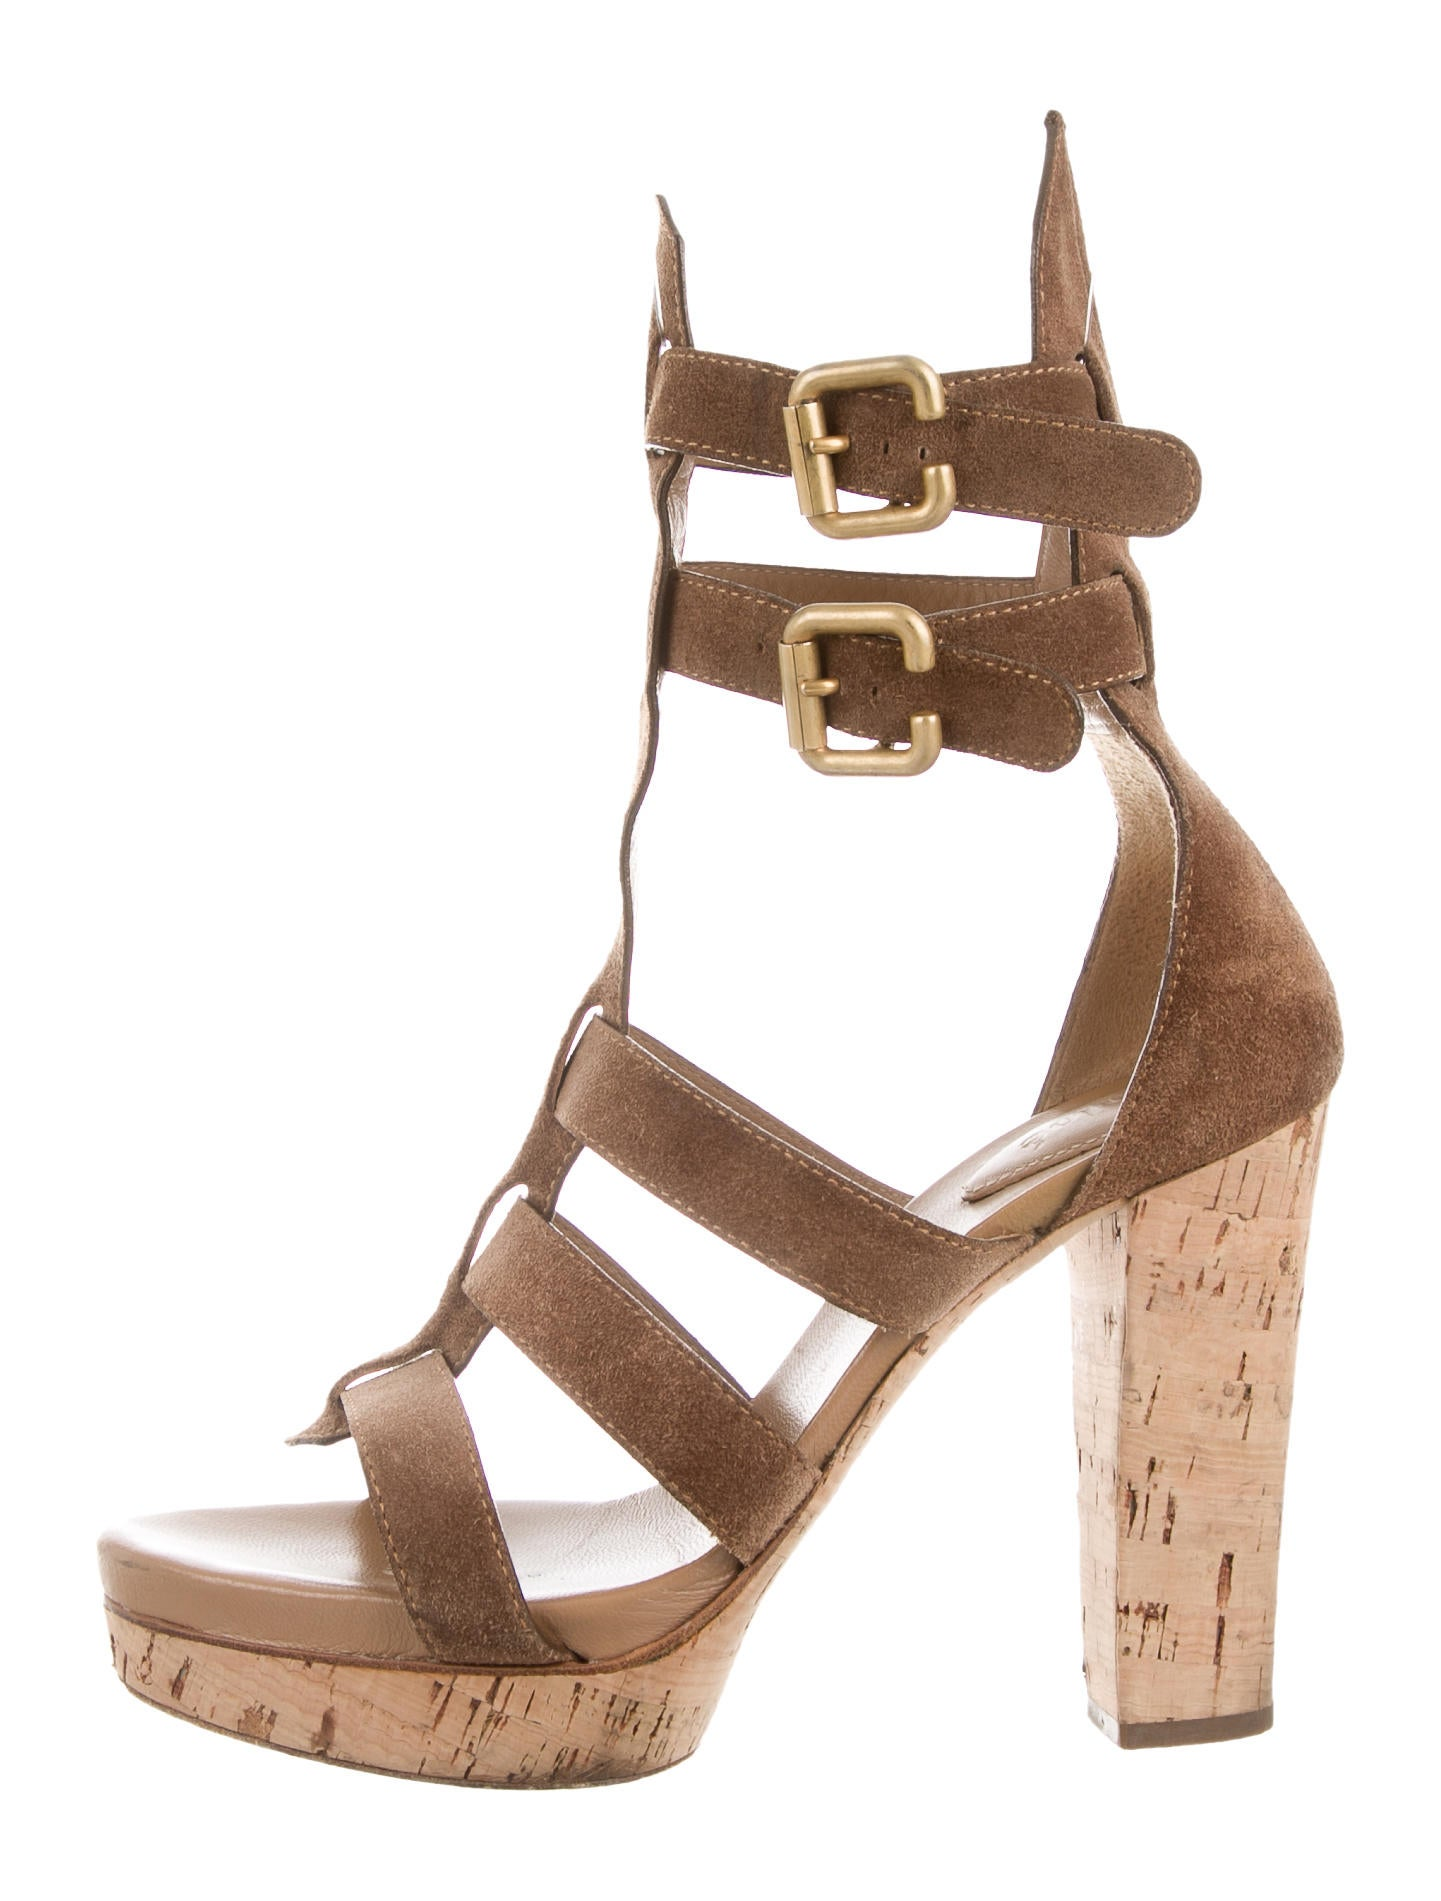 Chloé Platform Cage Sandals - Shoes